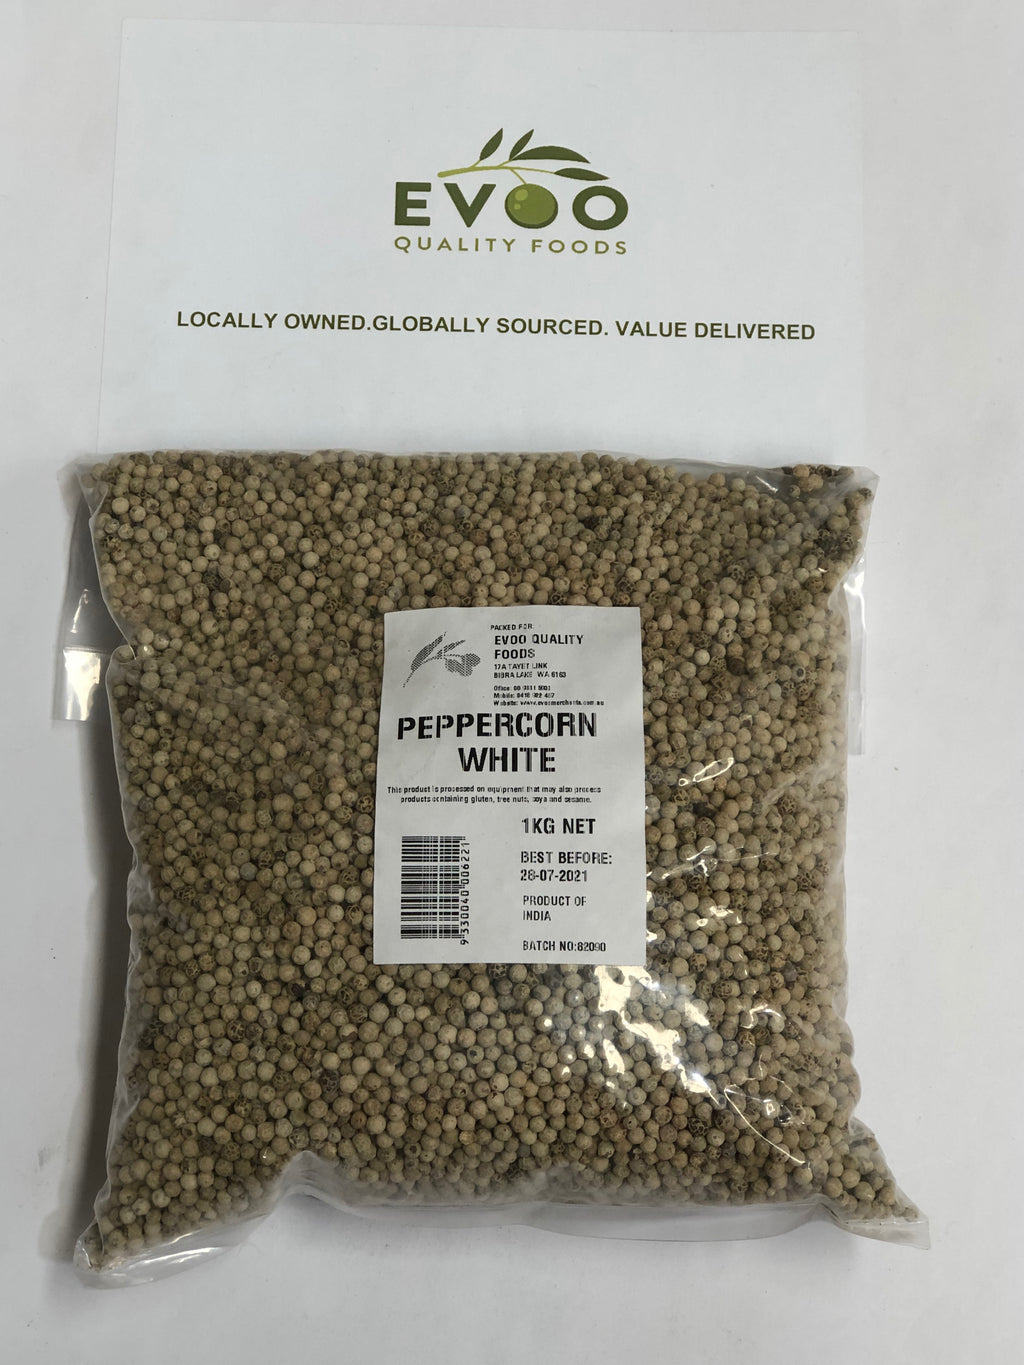 White Peppercorn Whole 1kg Bag EVOO QF